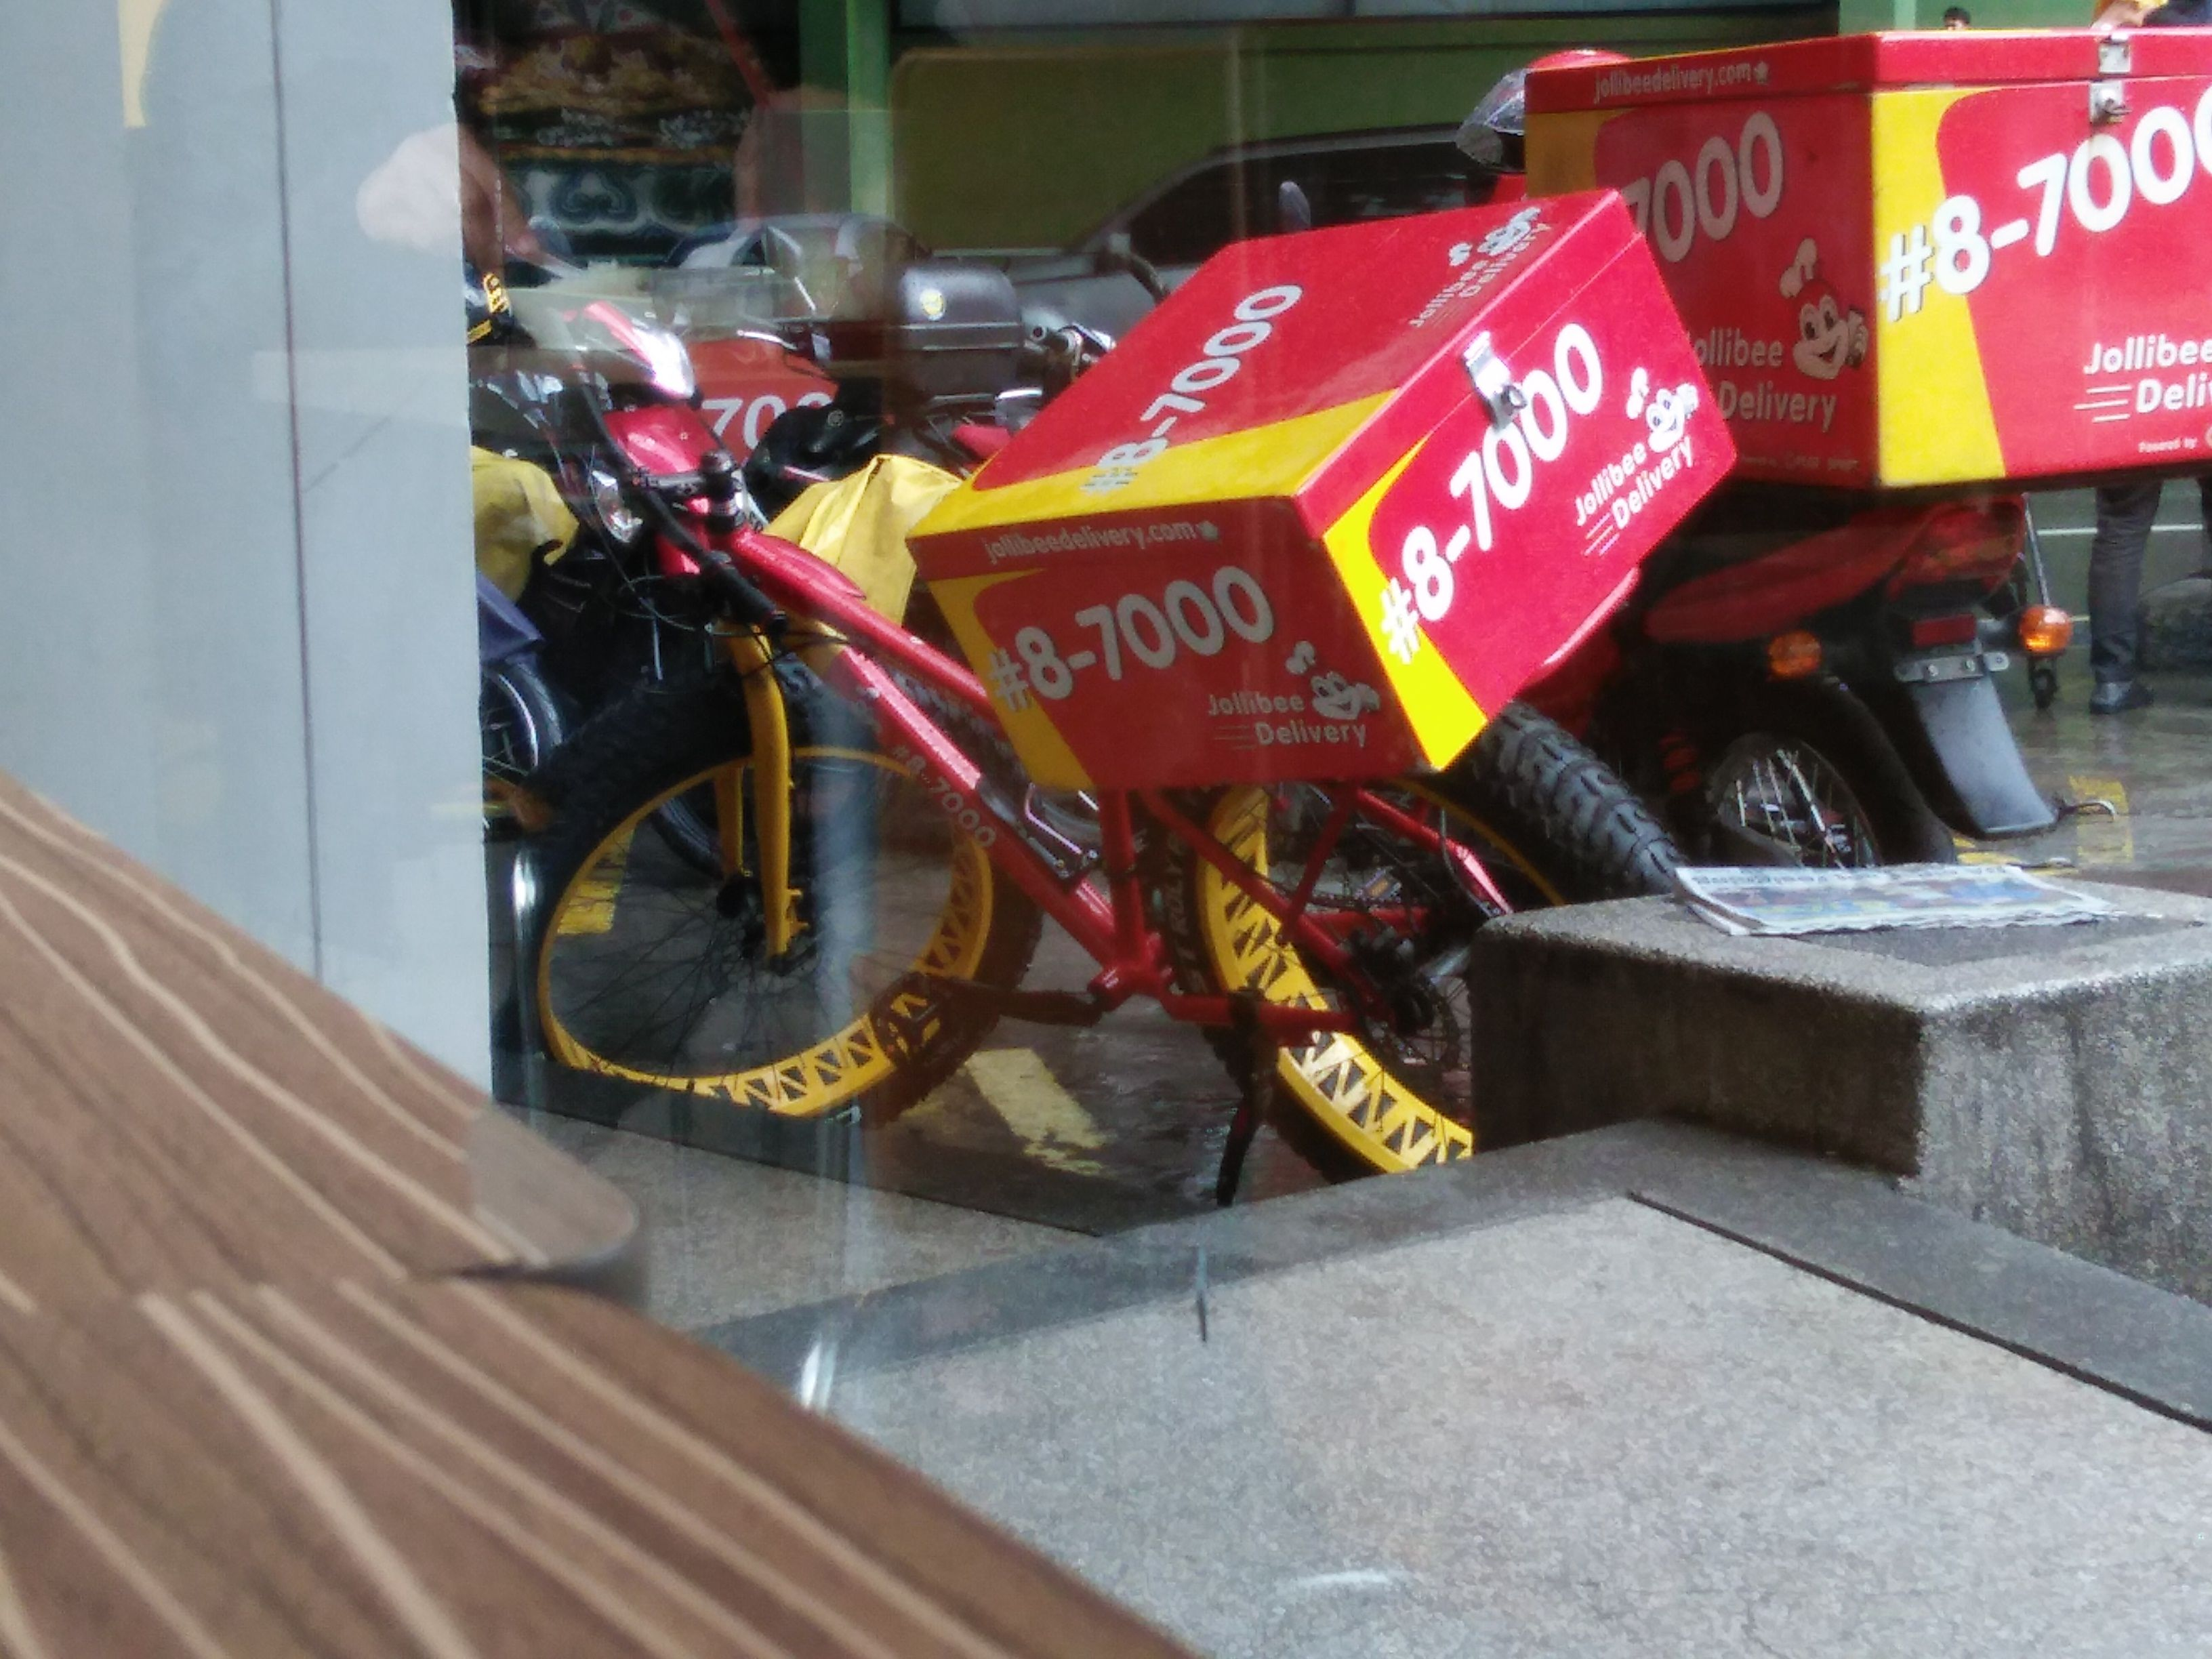 Fast food deliveryon a bike jollibee food delivery